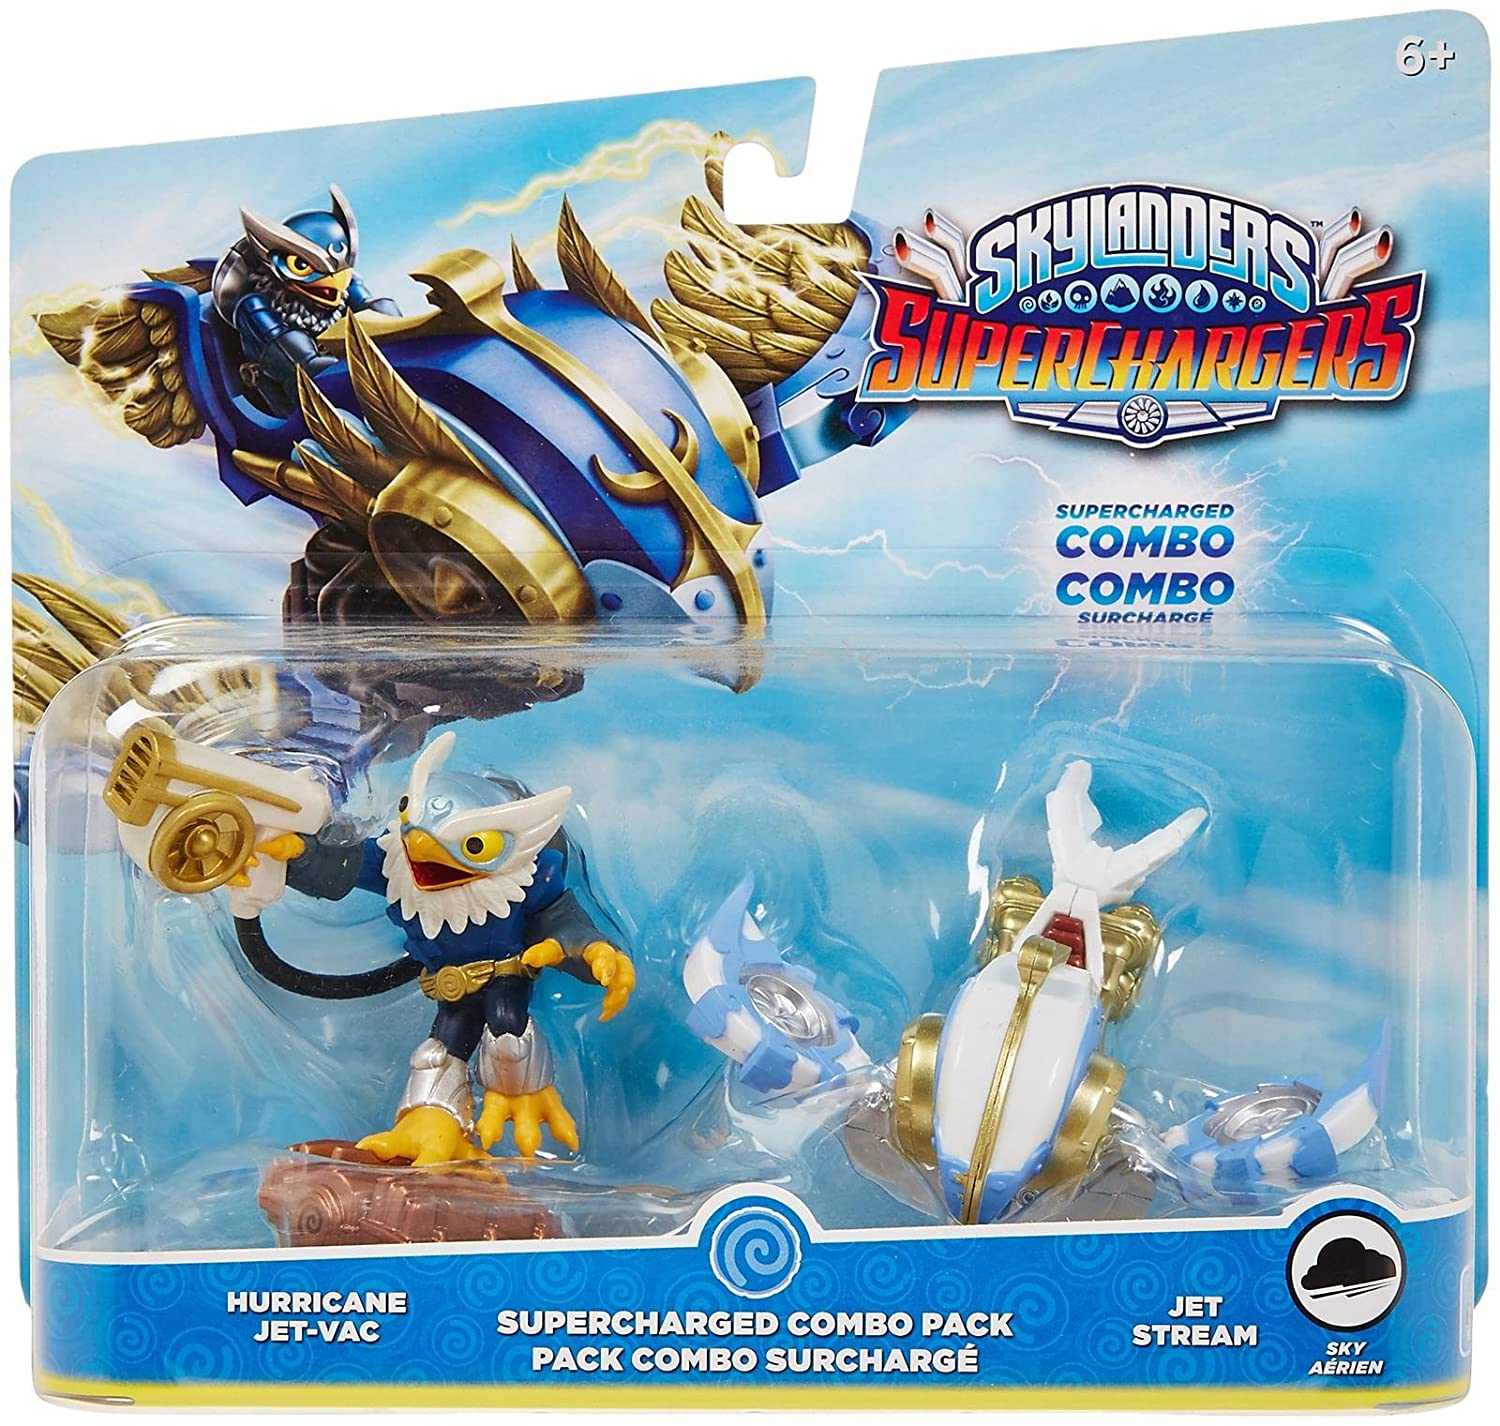 Regular discount Skylanders SuperChargers Dual Pack Indianapolis Mall #2: and Hurricane Jet-Vac Jet